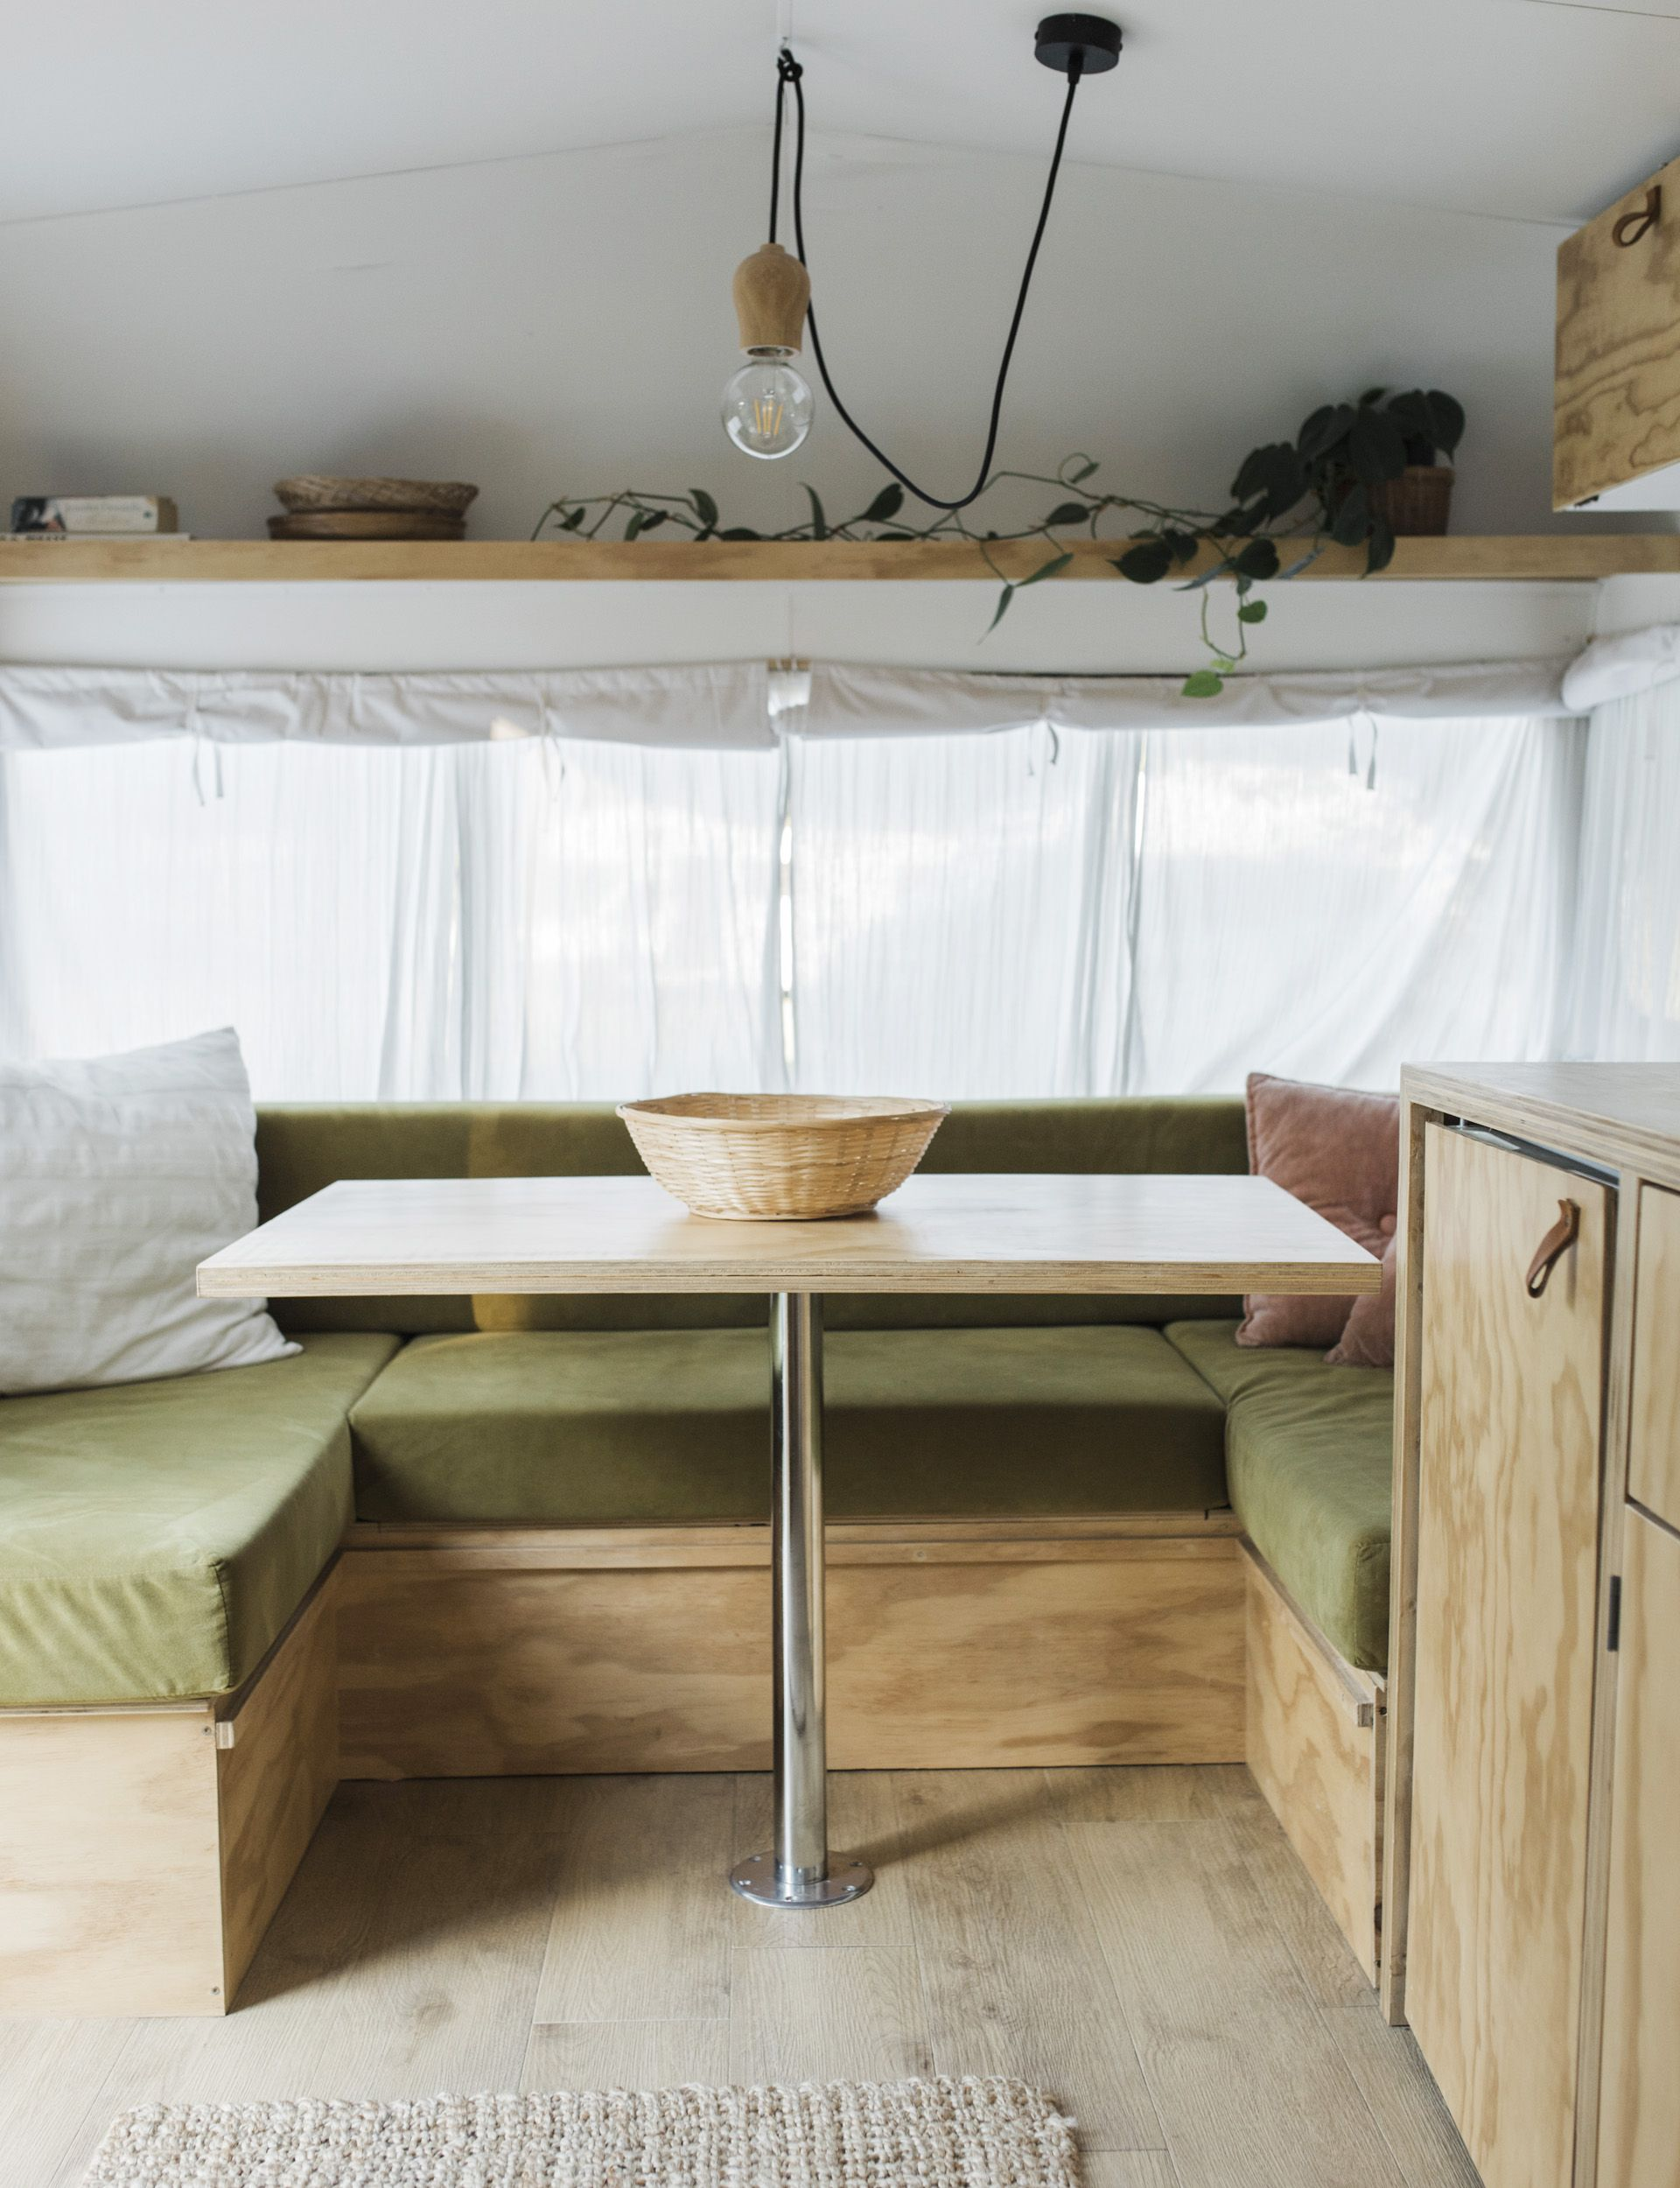 This chic summer caravan mixes old-school styling with modern finesse